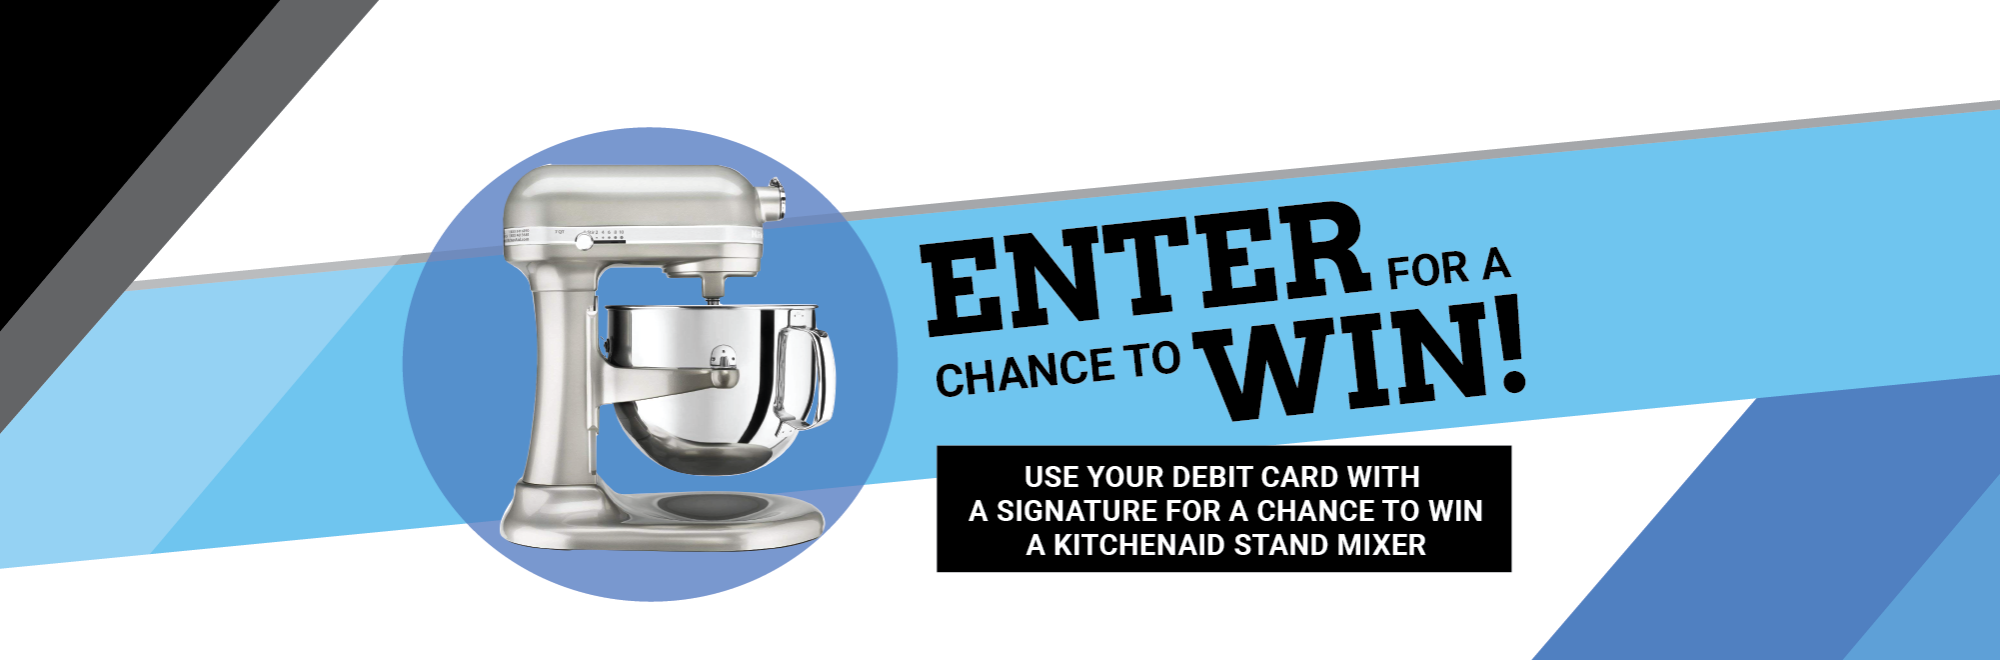 Enter to win a kitchenaid stand mixer when you use your debit card!